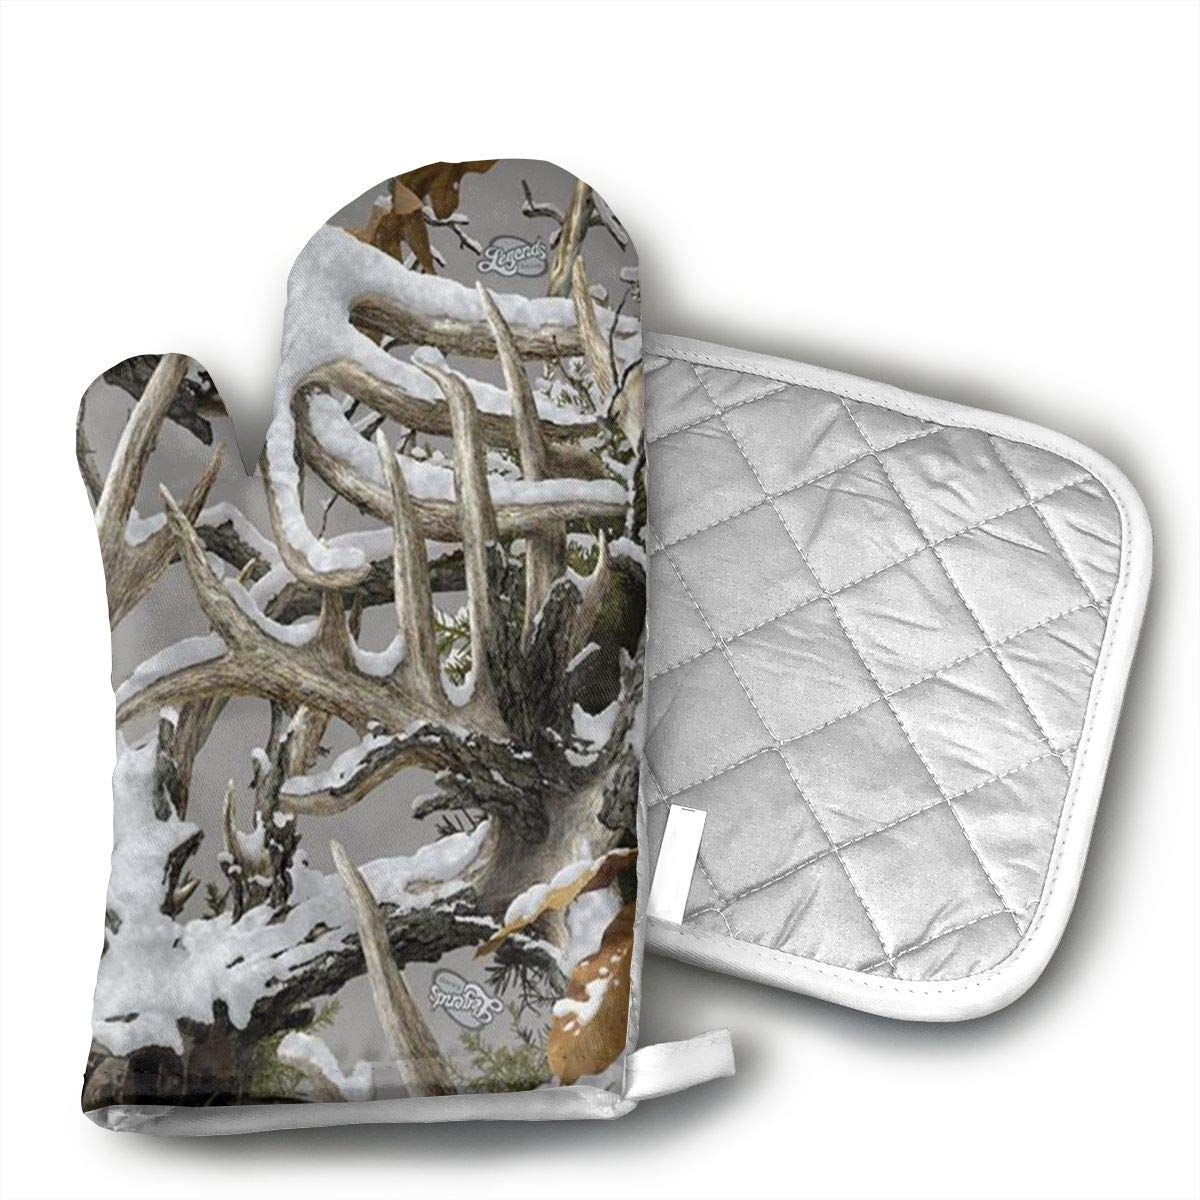 Realtree Camo Wallpapers Heat Resistant Hot Oven Mitts & Pot Holders for Kitchen Set With Cotton Neoprene Silicone Non-Slip Grip, Oven Gloves for BBQ Cooking Baking, Grilling, Machine Washable